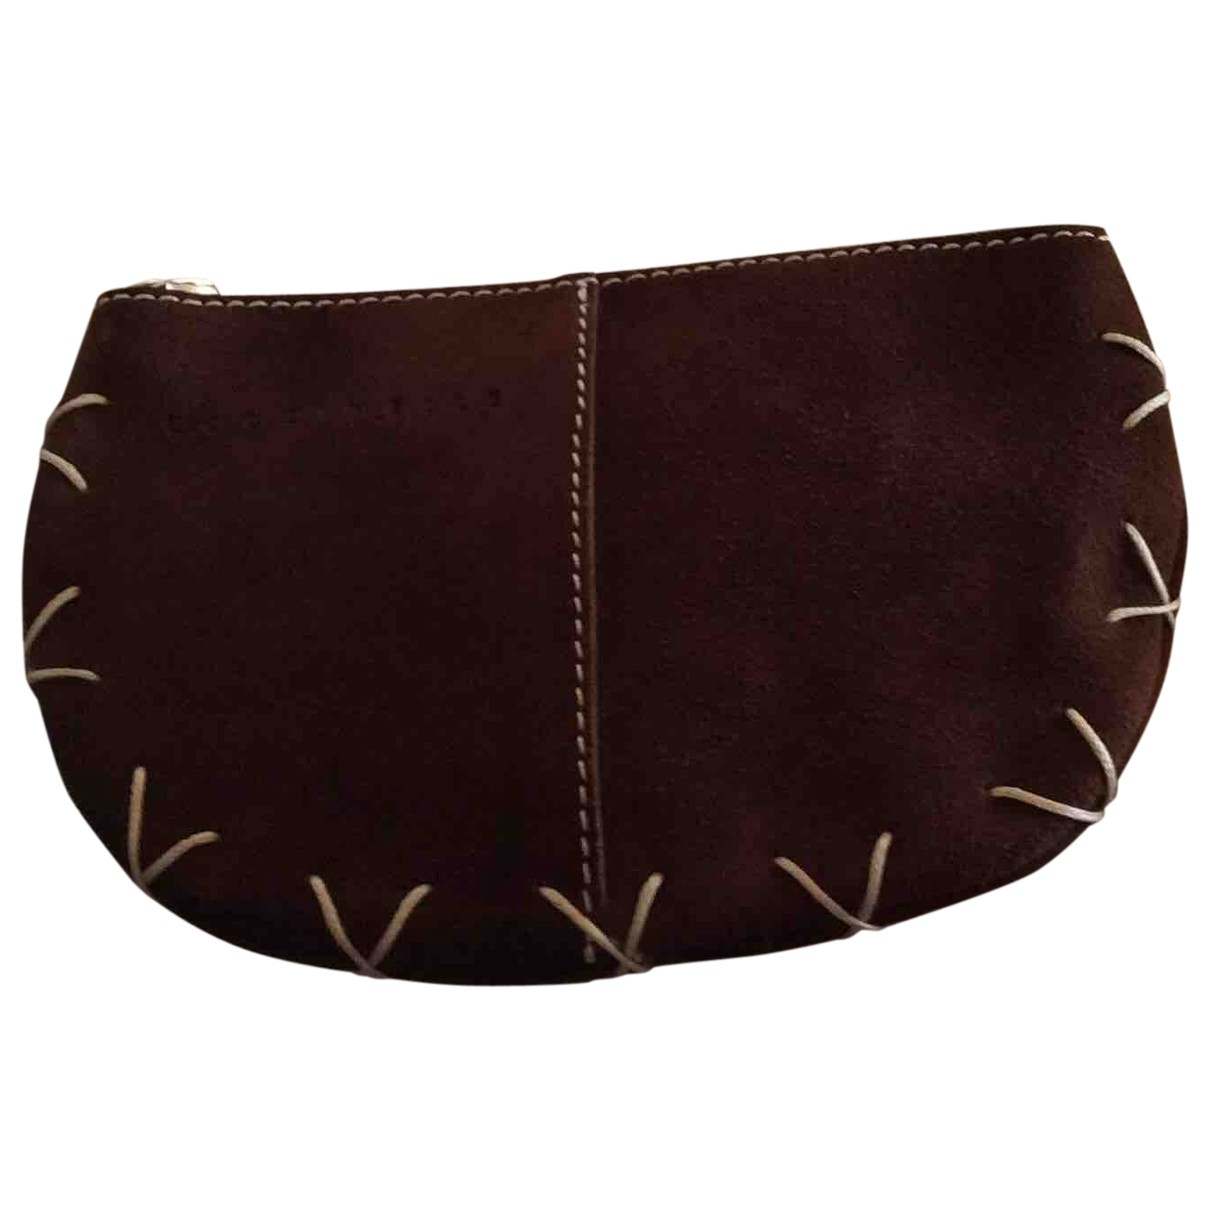 Coccinelle \N Brown Suede Clutch bag for Women \N